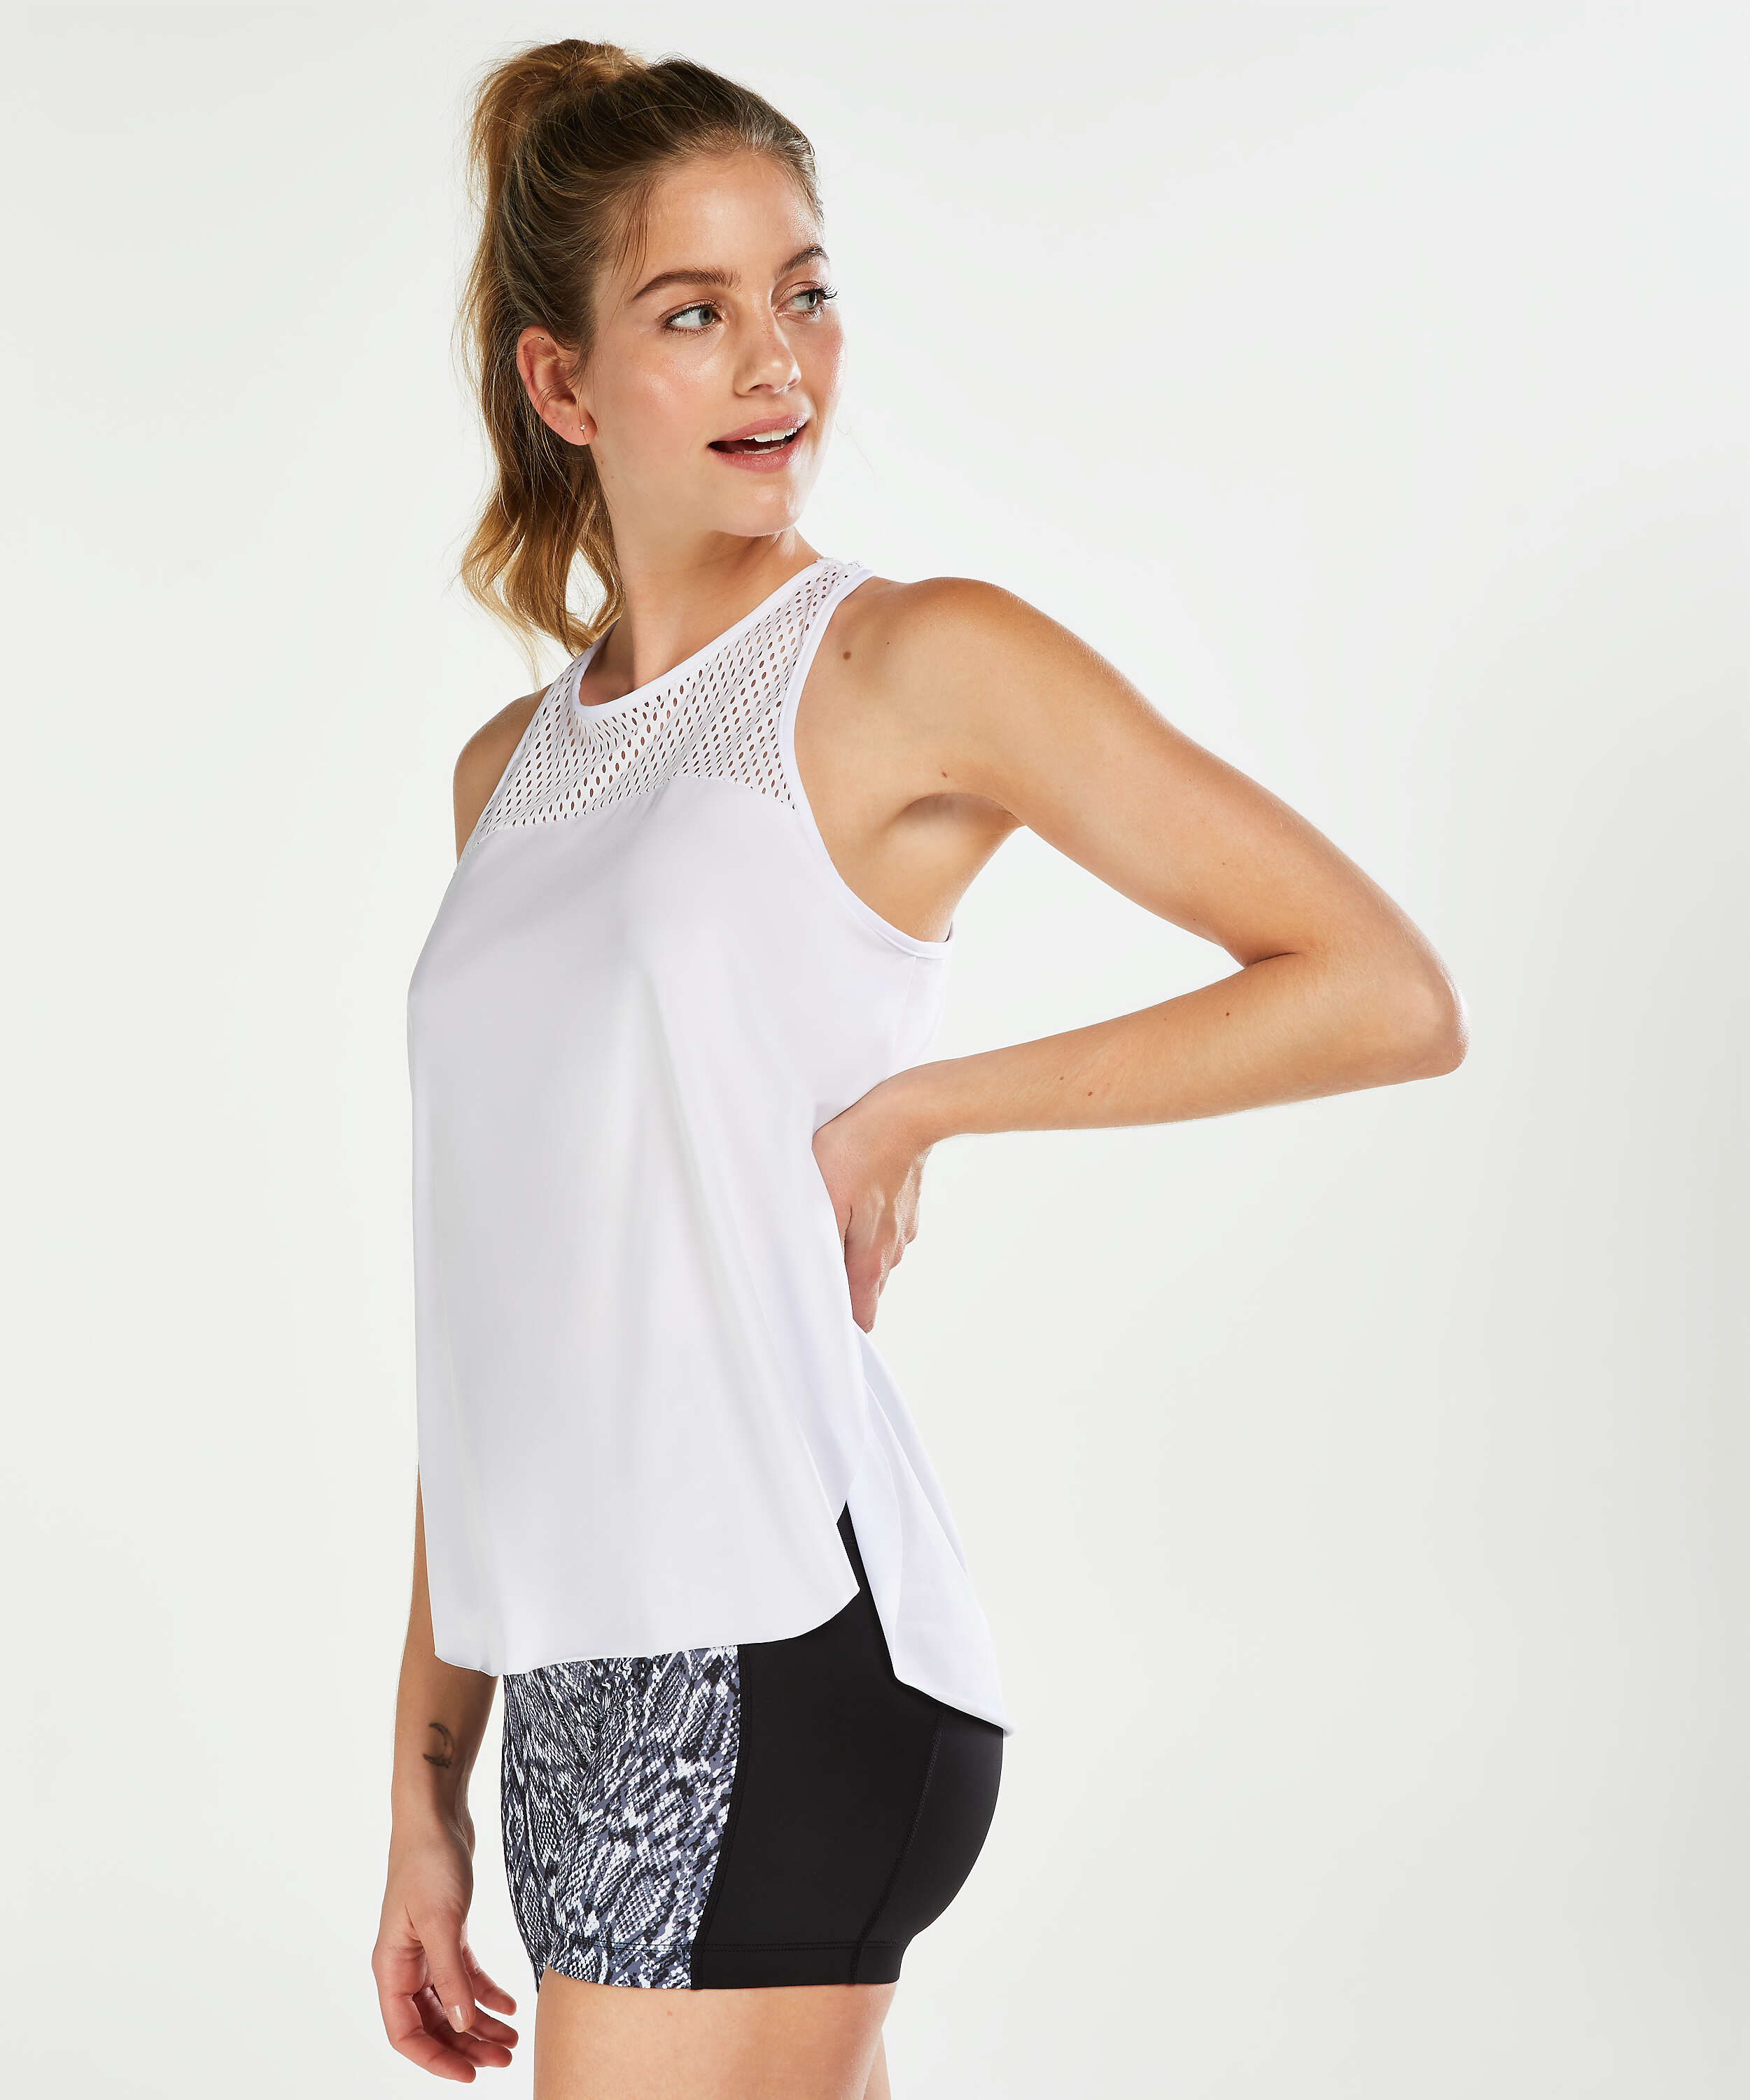 HKMX Tank Top Loose Fit, Weiß, main